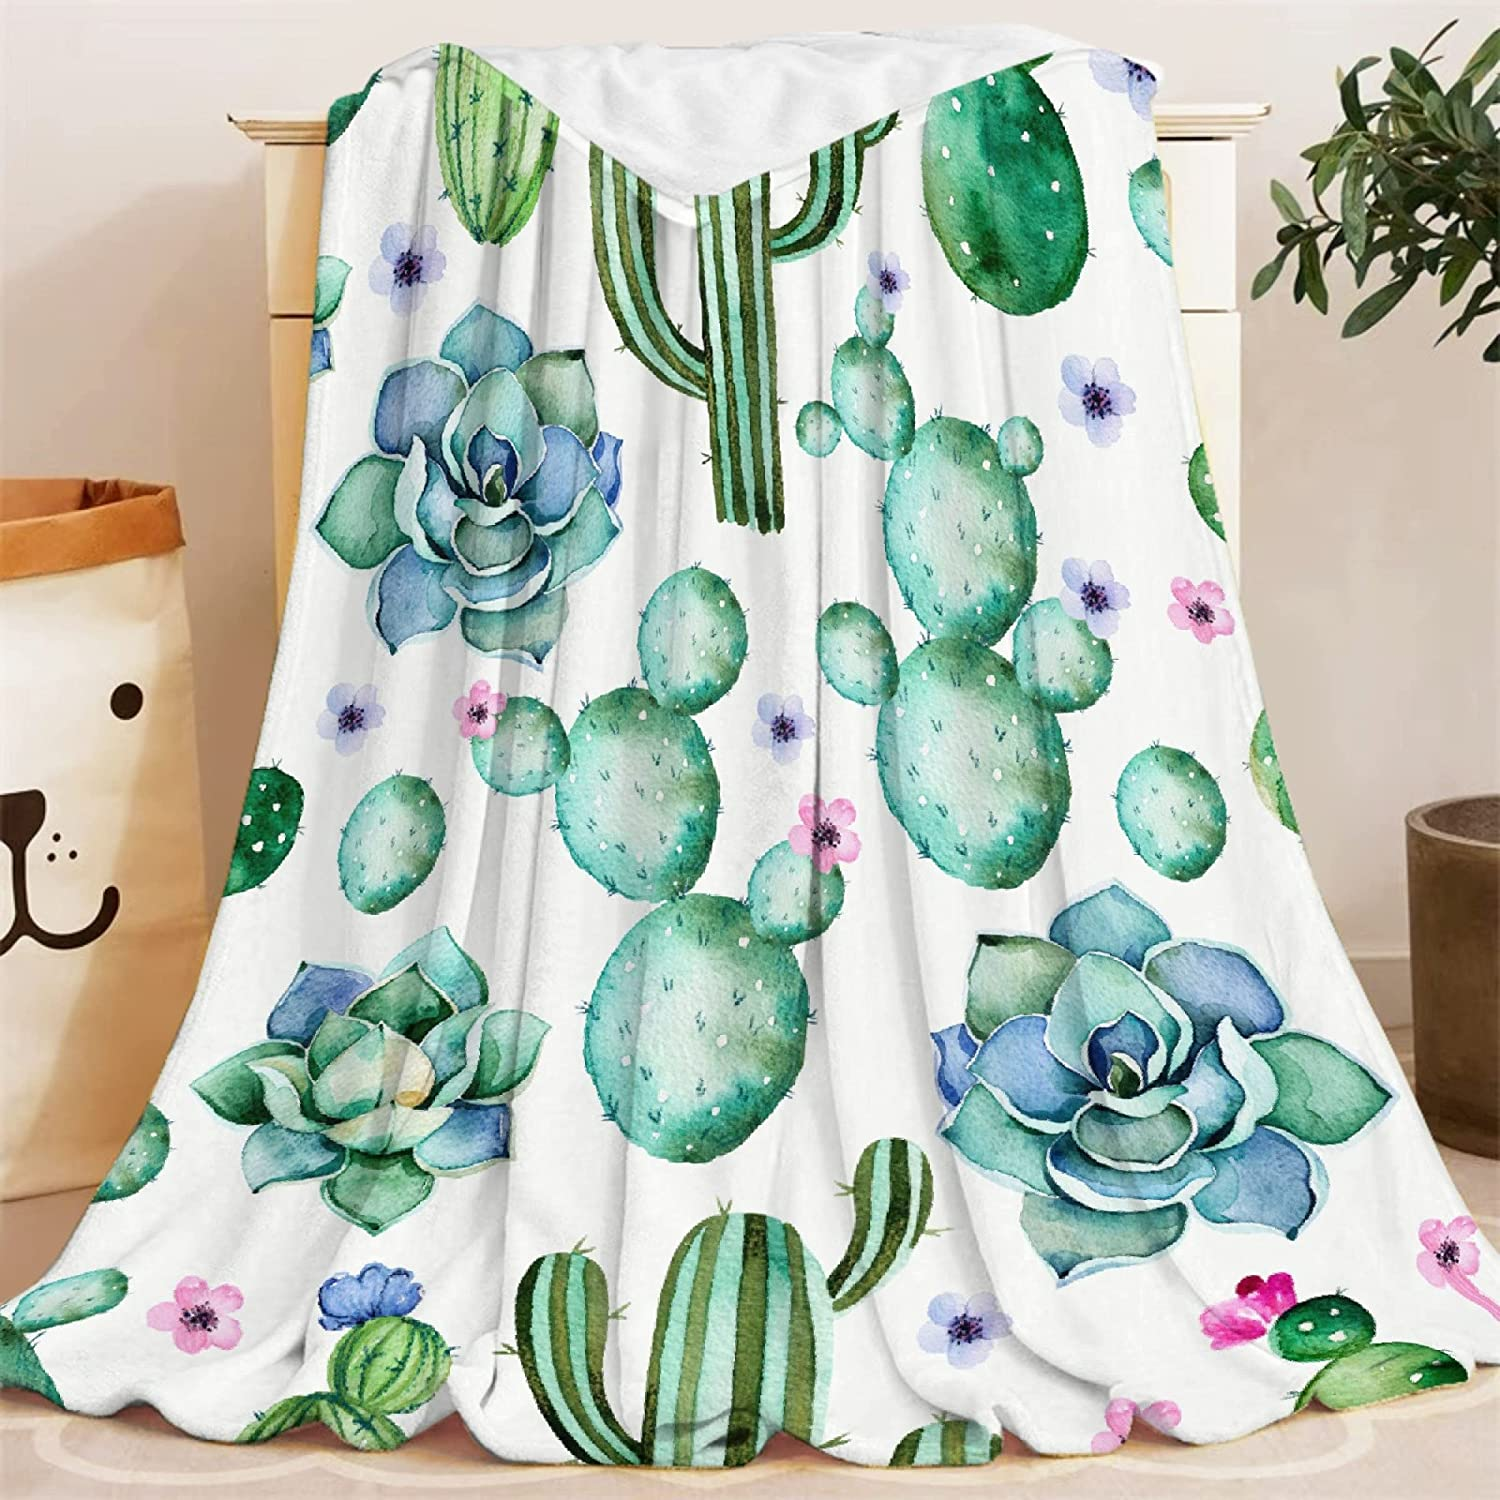 Sale price Fashionable Blanket Cactus Flower Succulent Gifts Throws Soft Super Lightwei